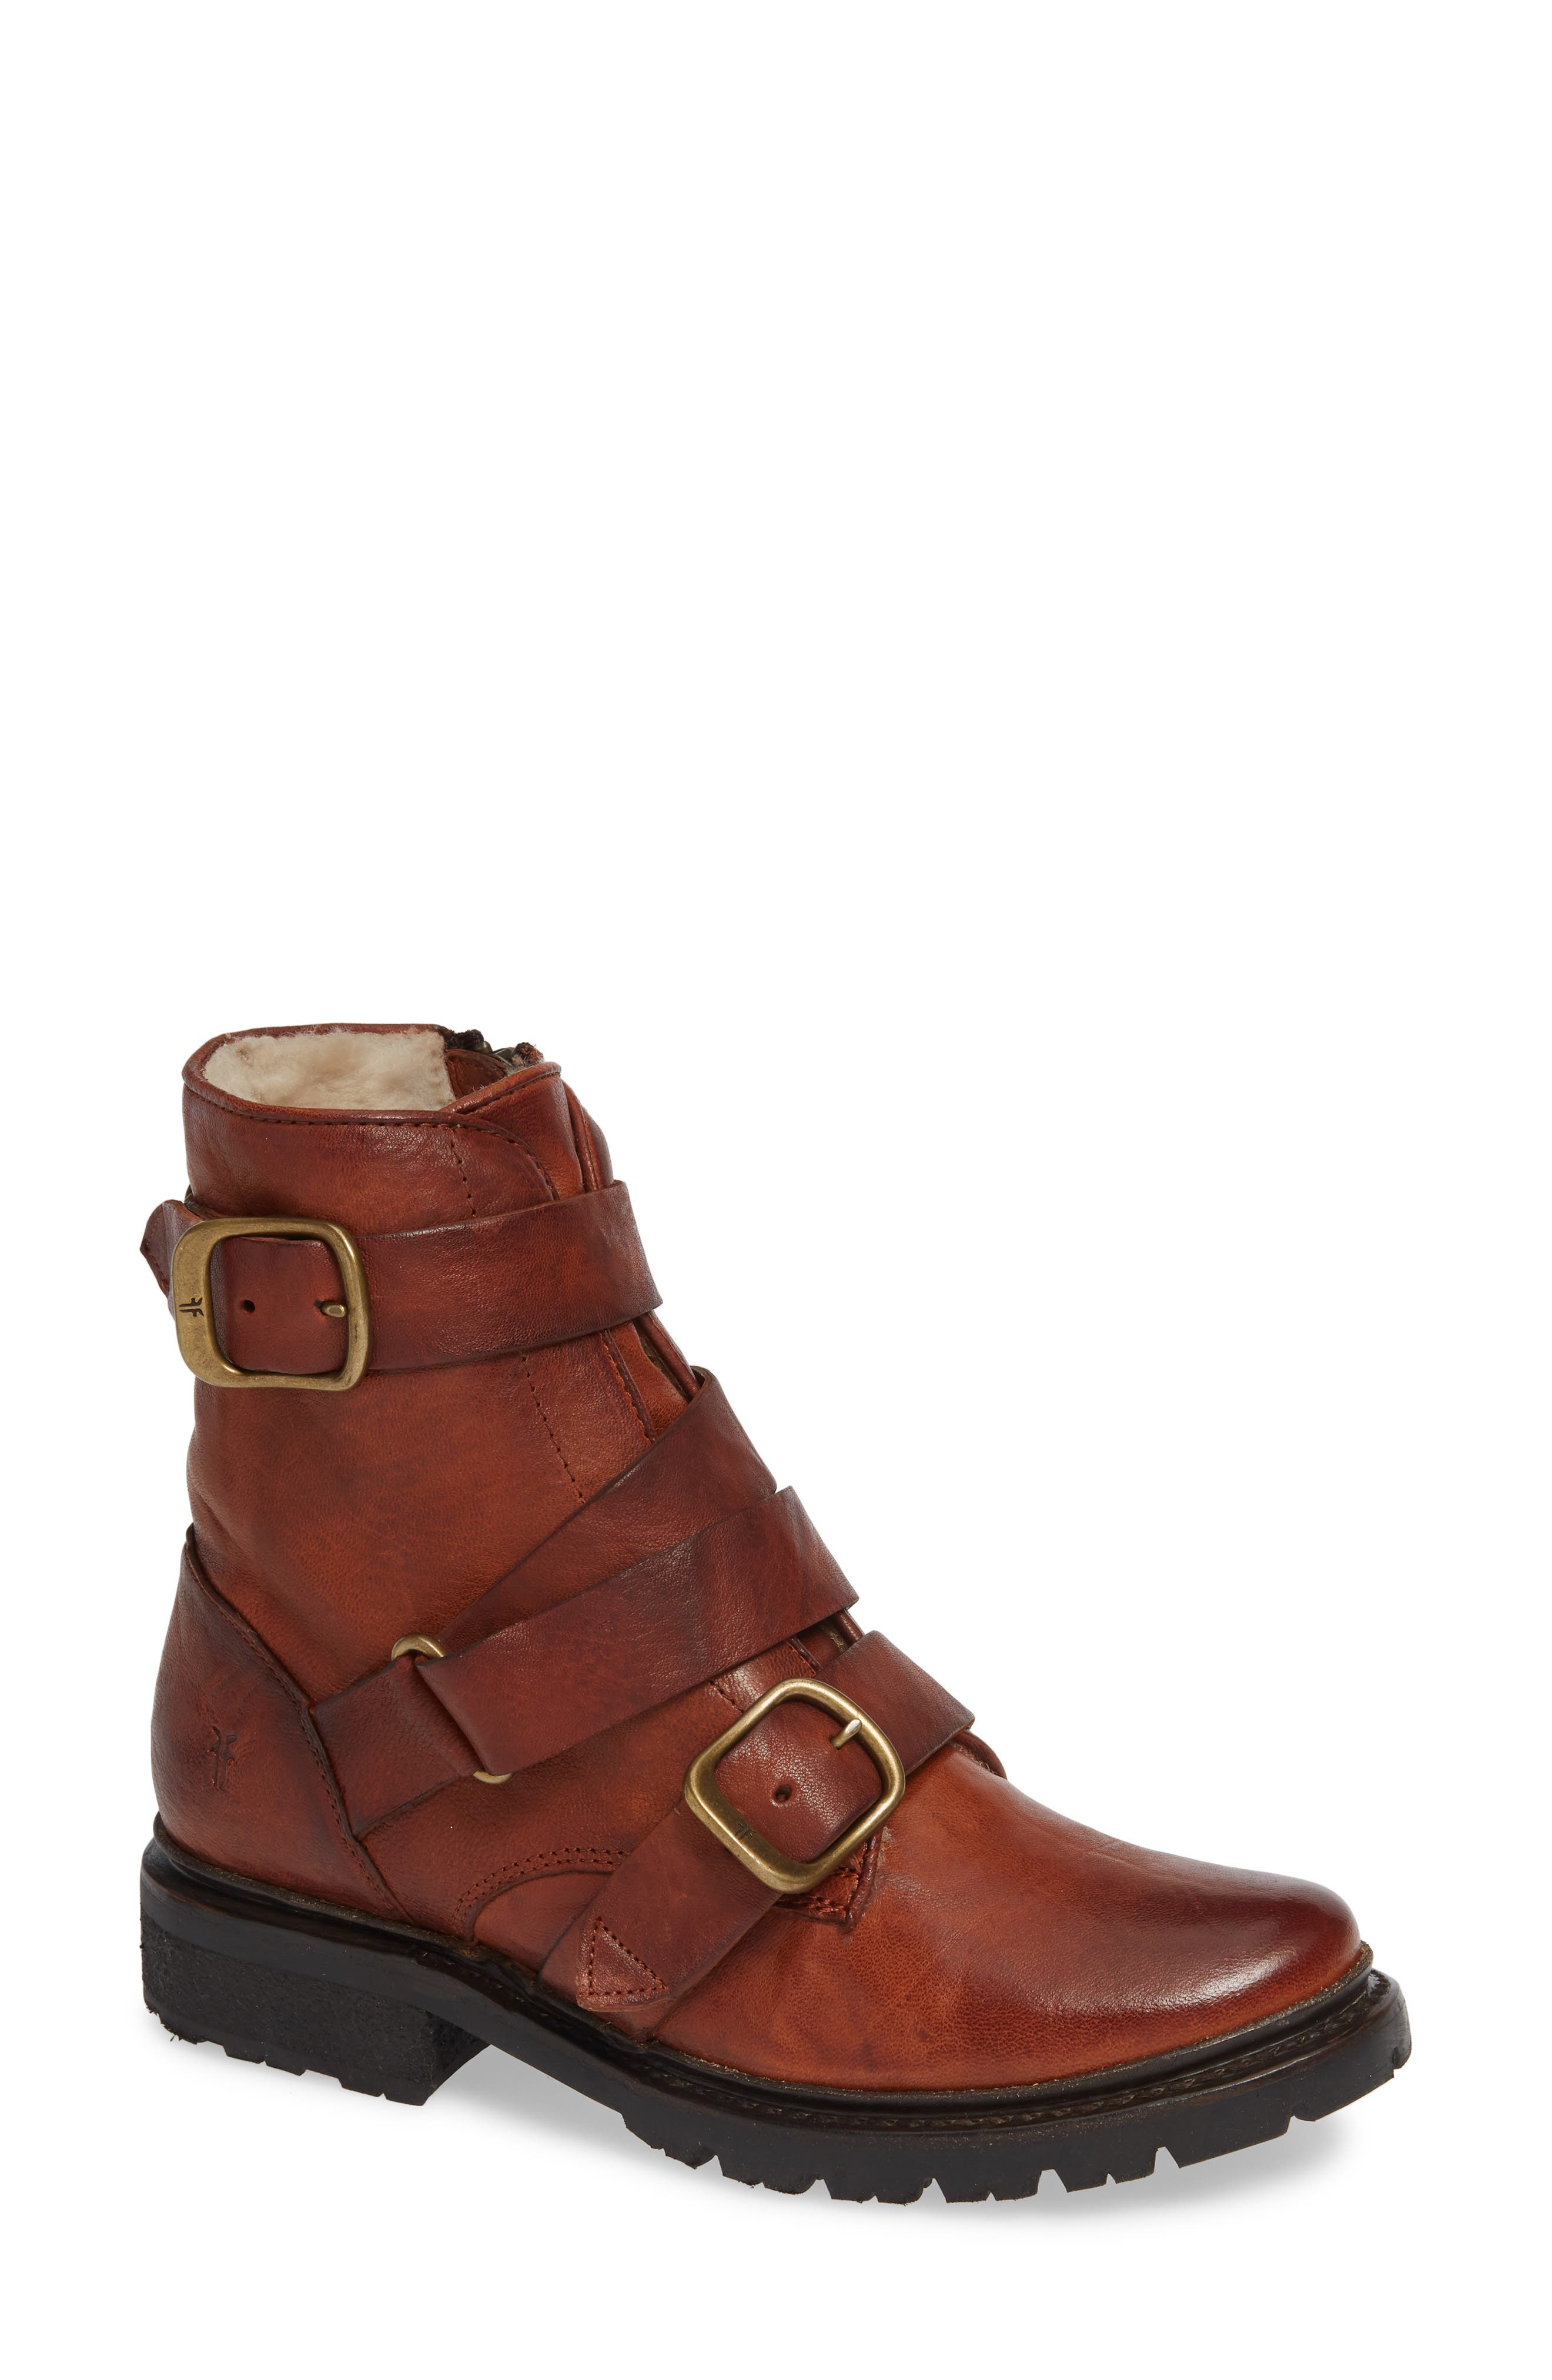 Vanessa Tanker Genuine Shearling Lined Boot in Cognac Leather